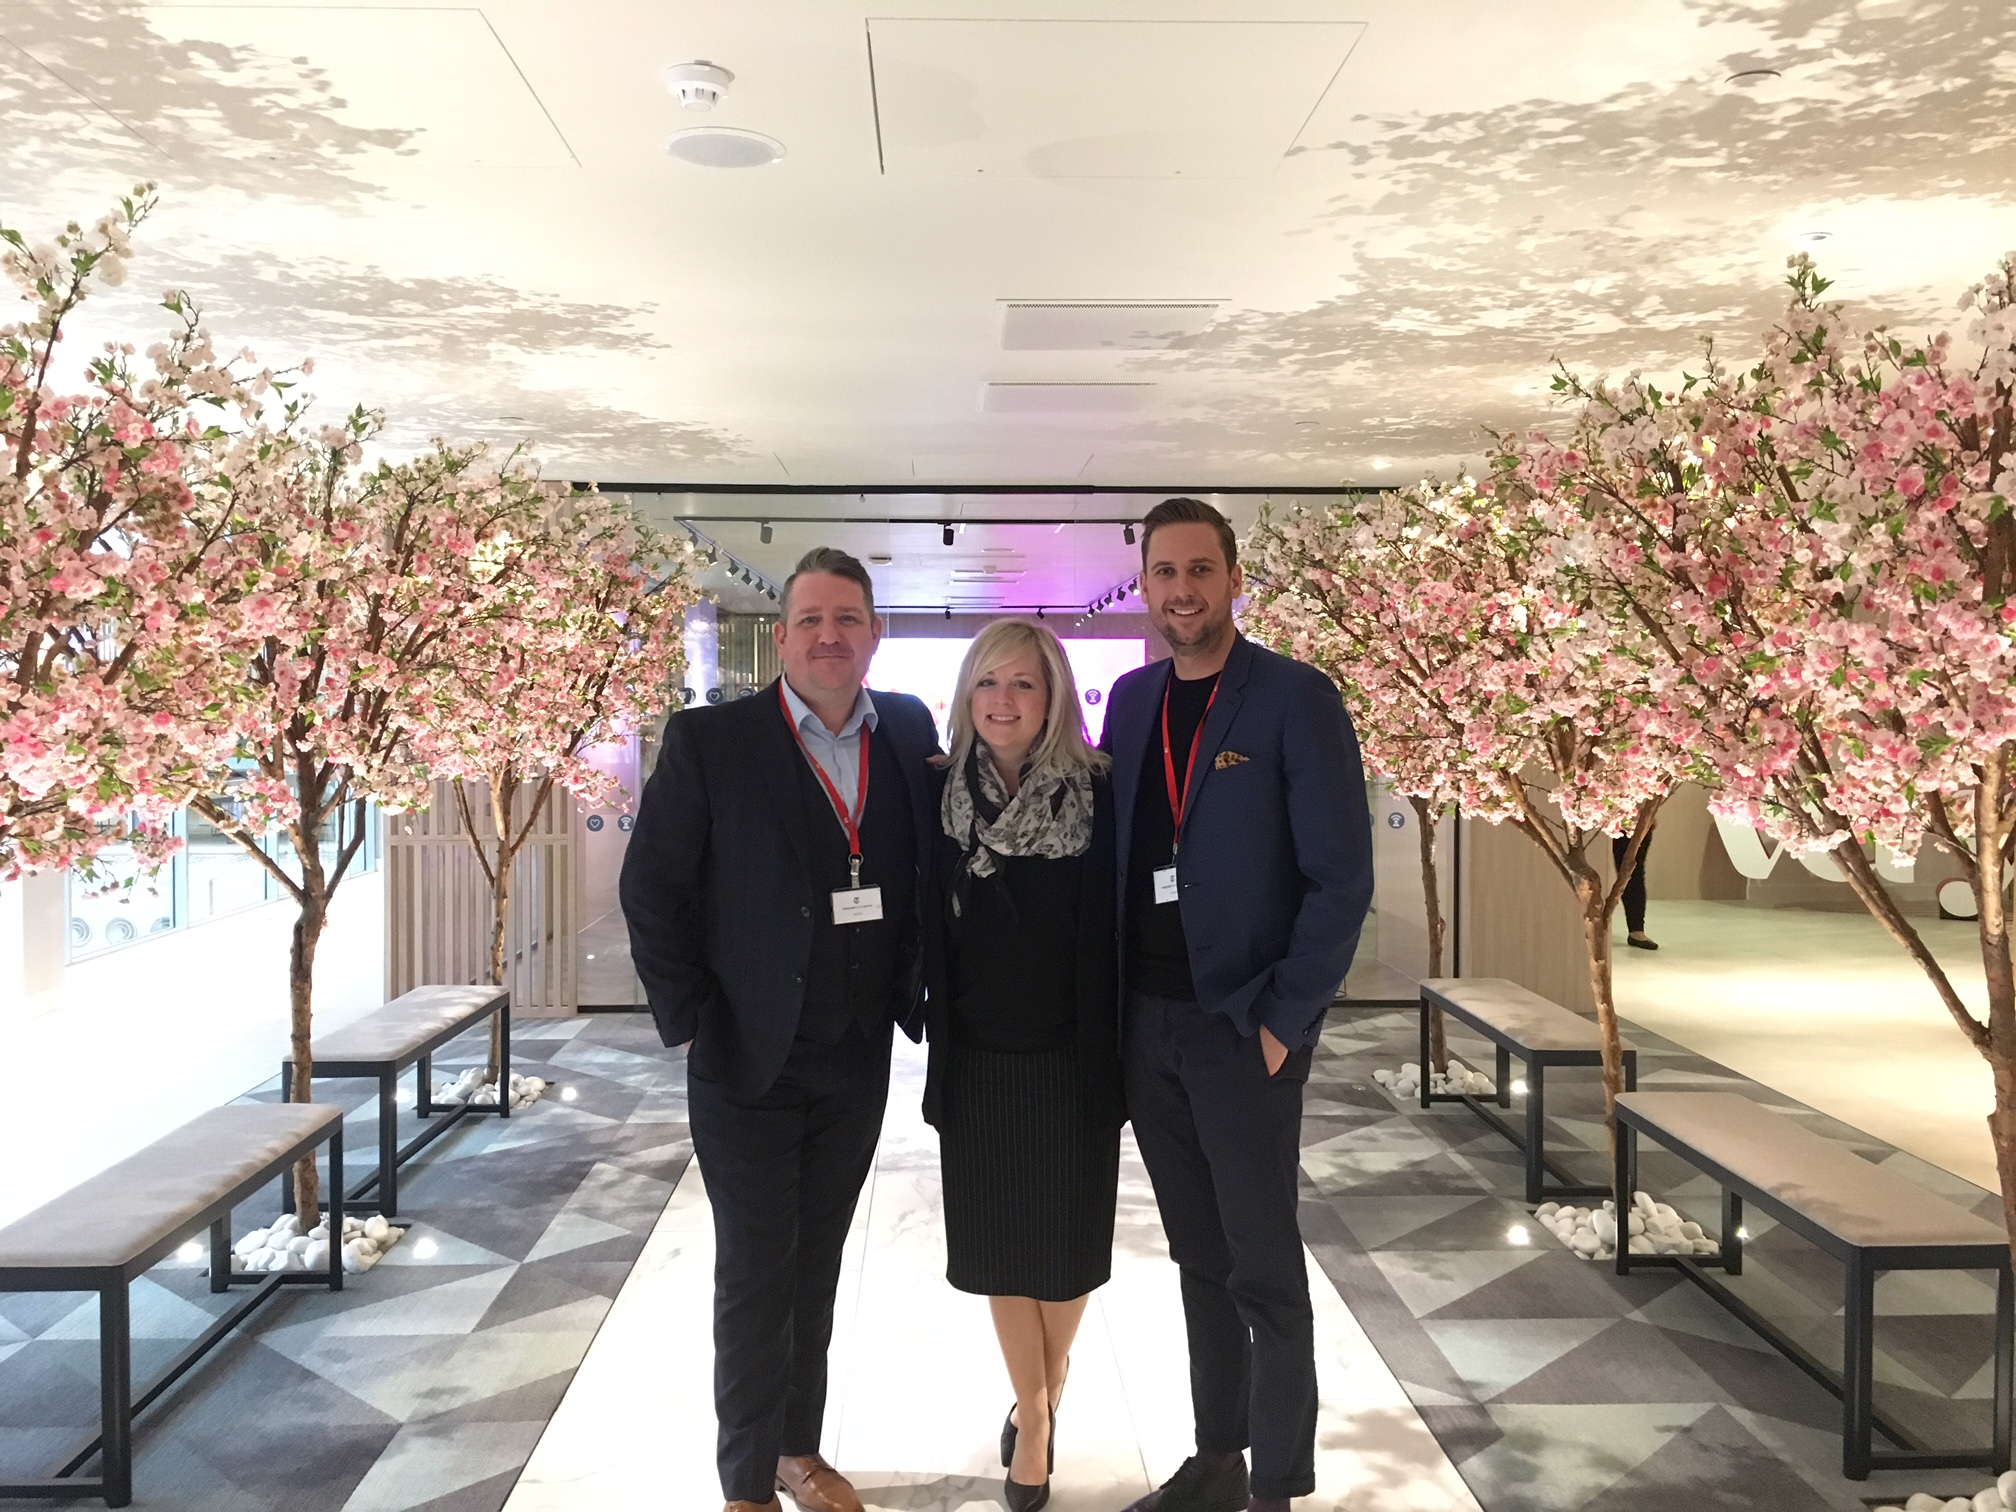 The Achievers EMEA Team at Shop Direct's Central London Office for the Achievers Knowledge Exchange Event.